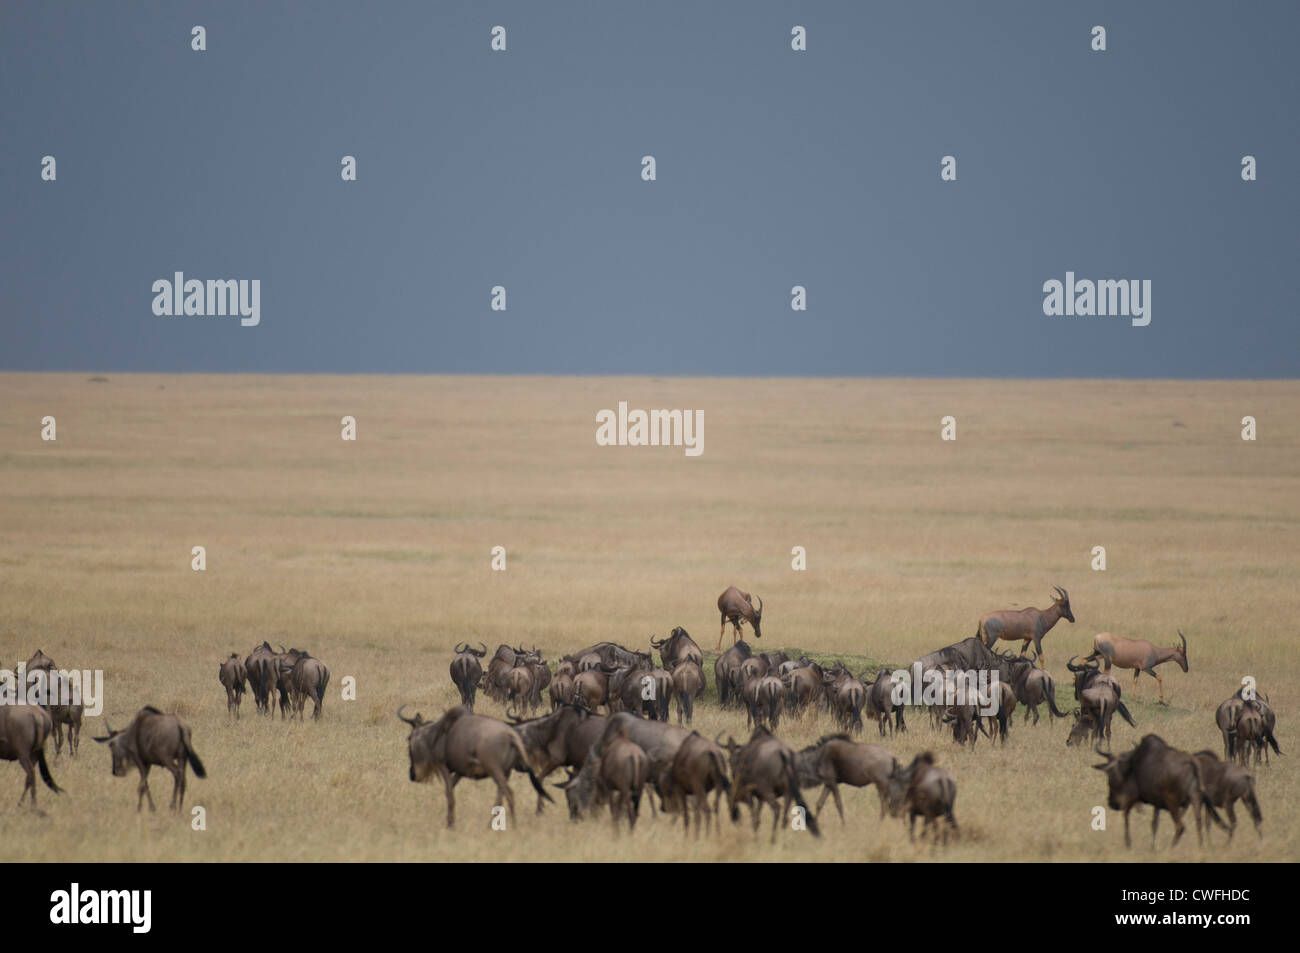 Wildebeeste in the Masai Mara - Stock Image